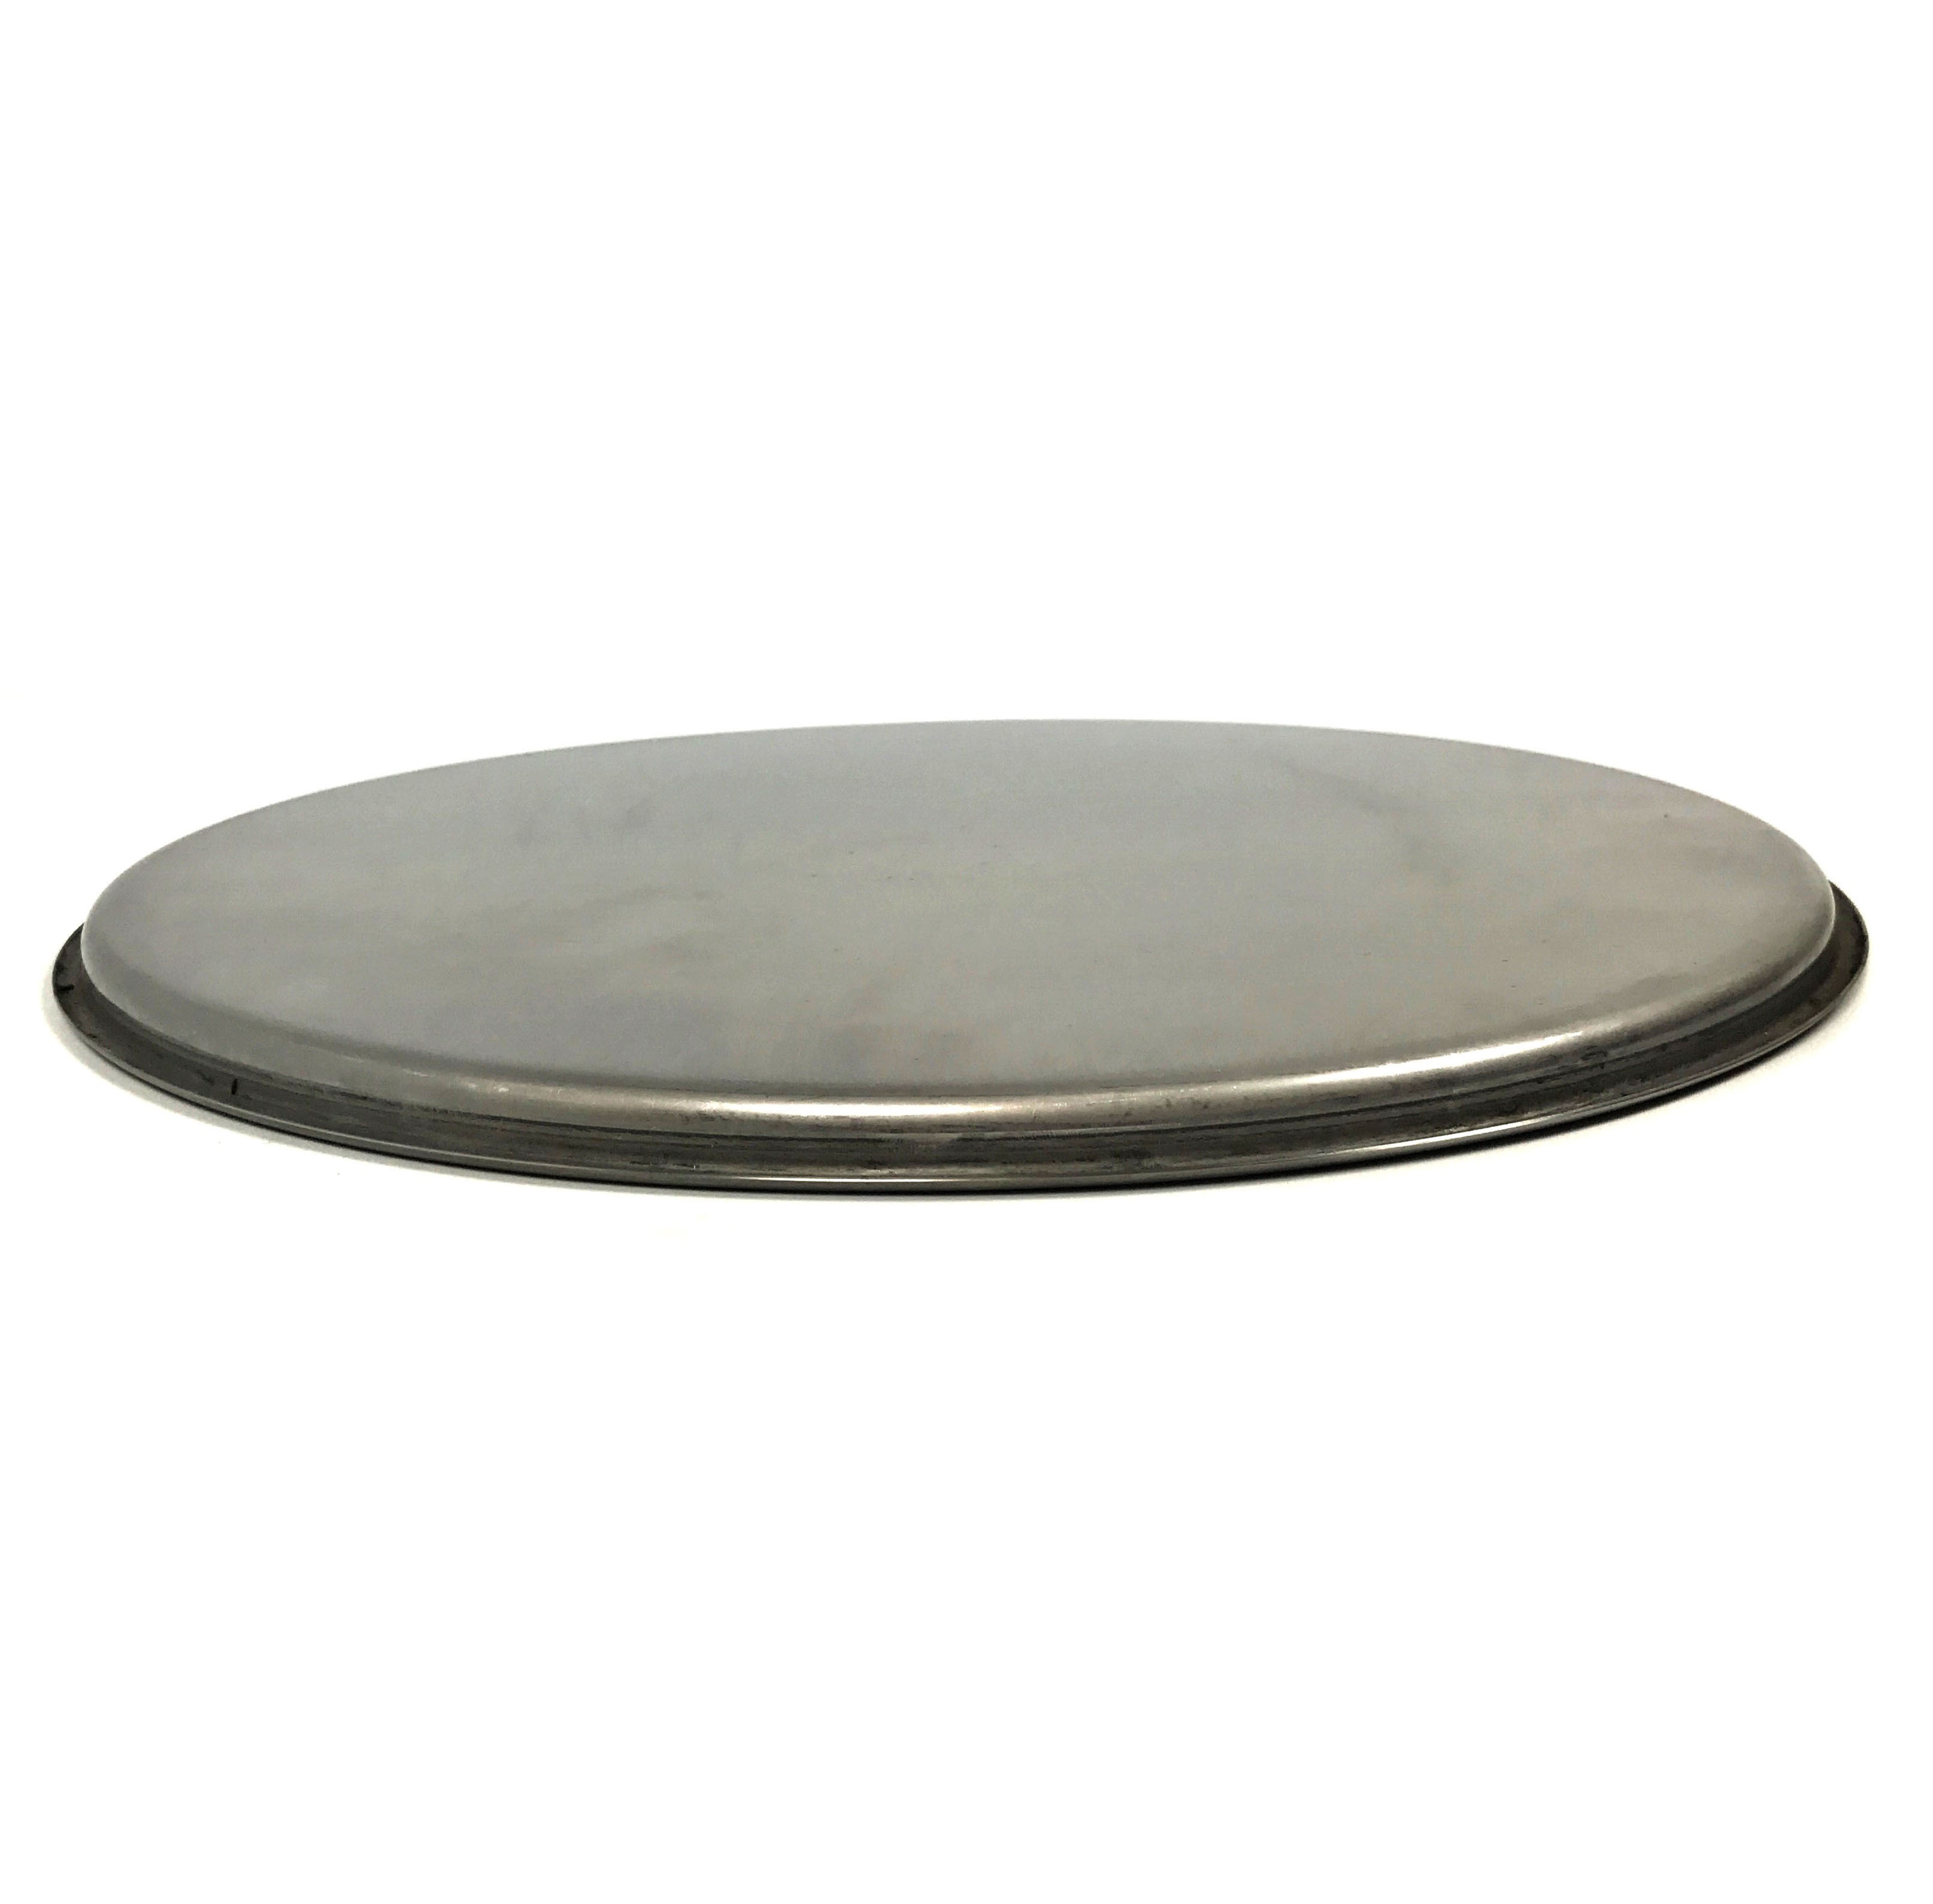 316 Stainless Steel Lid With Bead